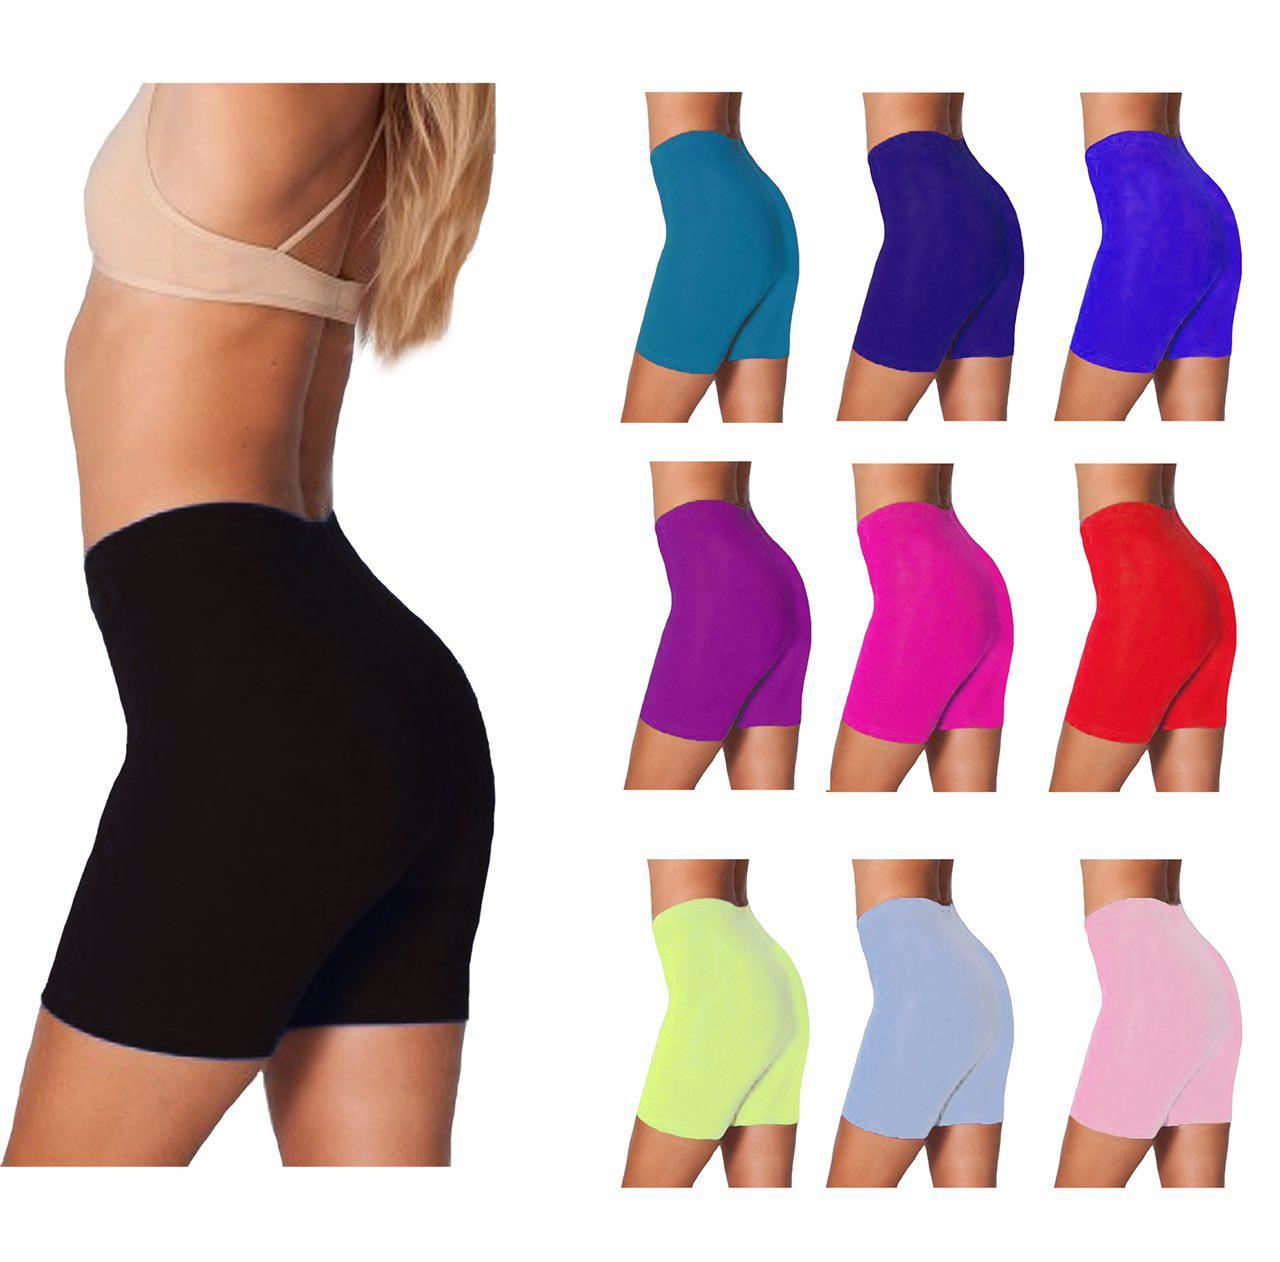 Ladies Womens Cycling Shorts Dancing Shorts Leggings Active Casual Shorts 8-22 Cycling